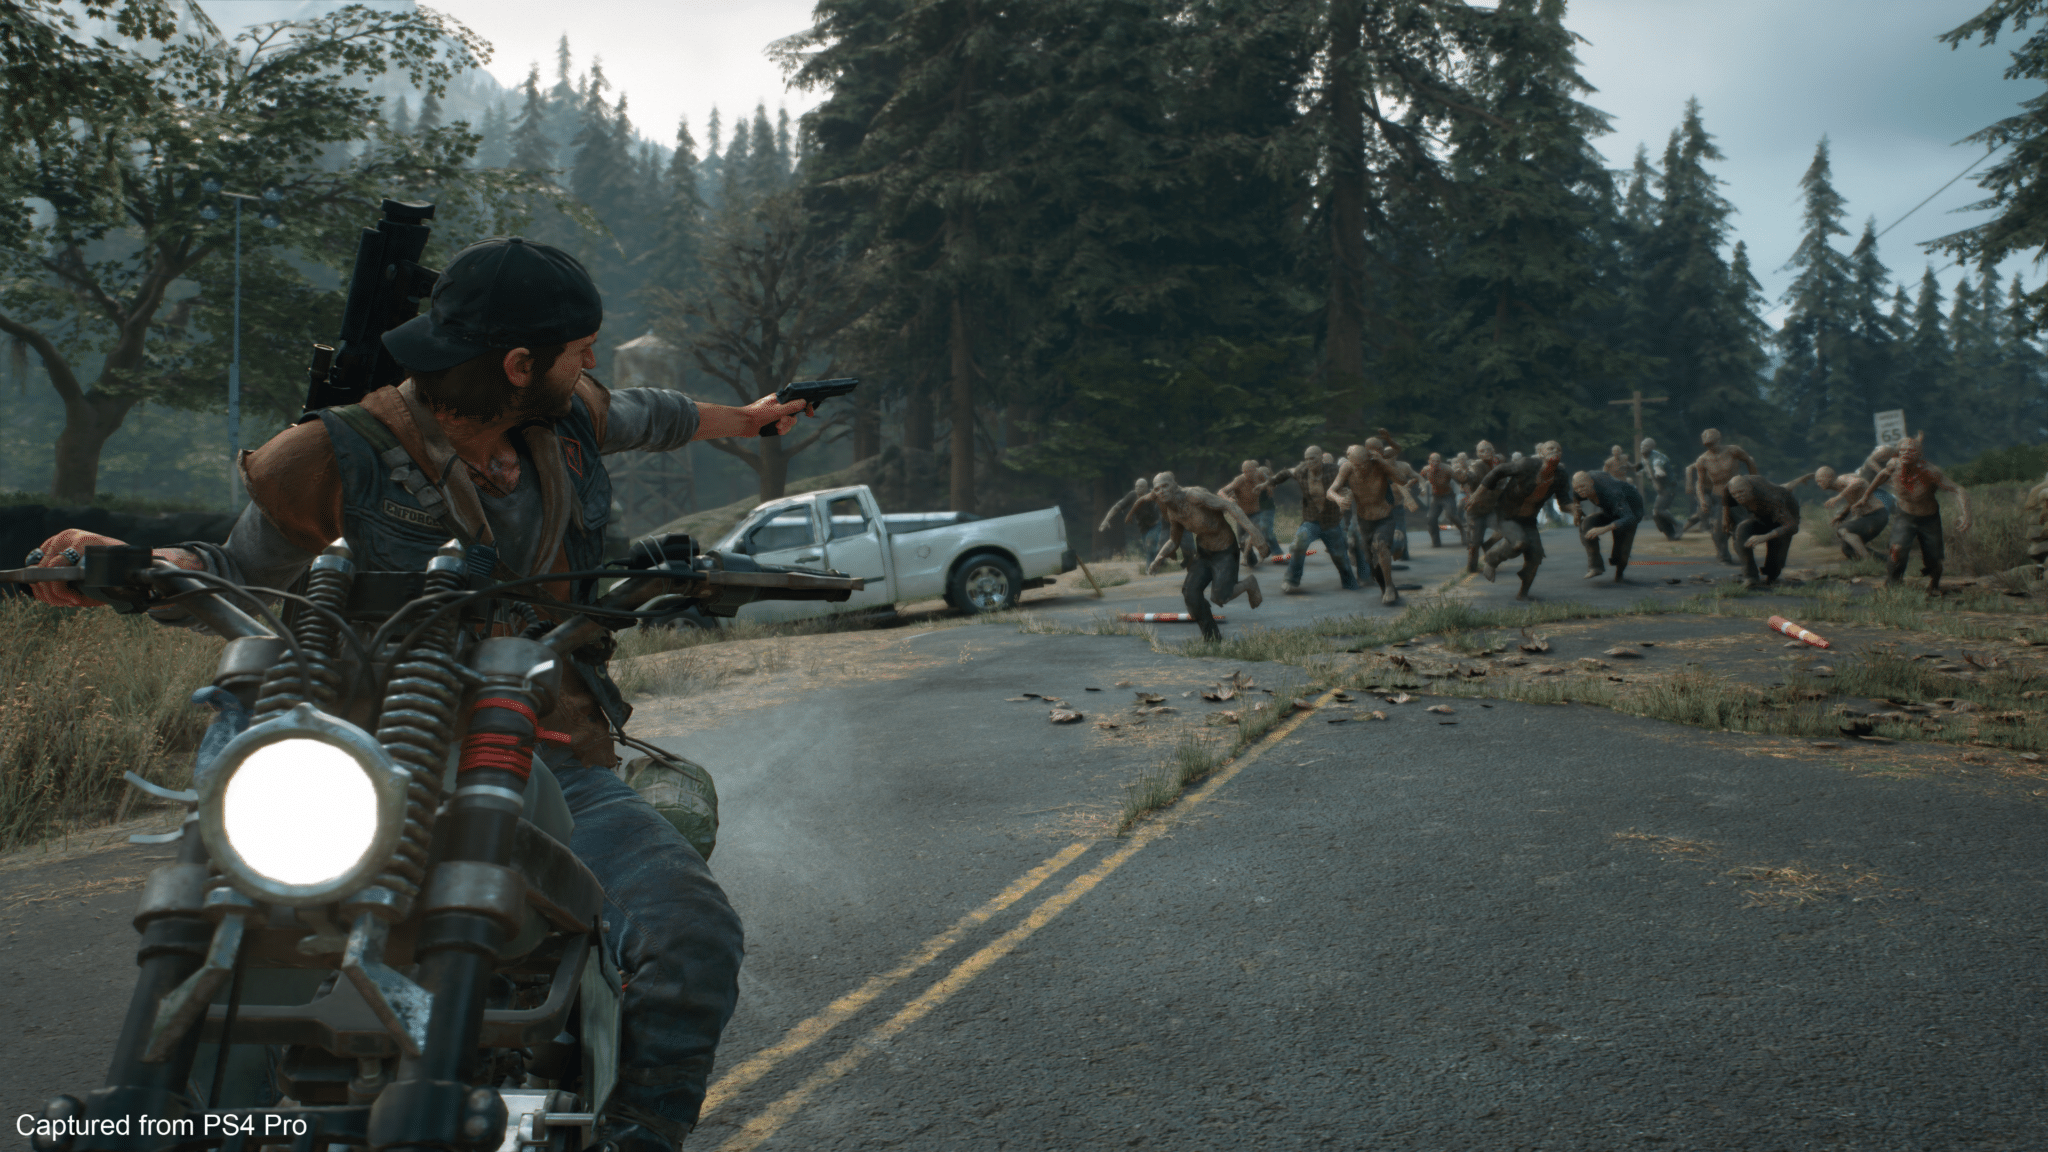 Over 20,000 angry fans sign petition for Days Gone 2 after Sony refuses sequel